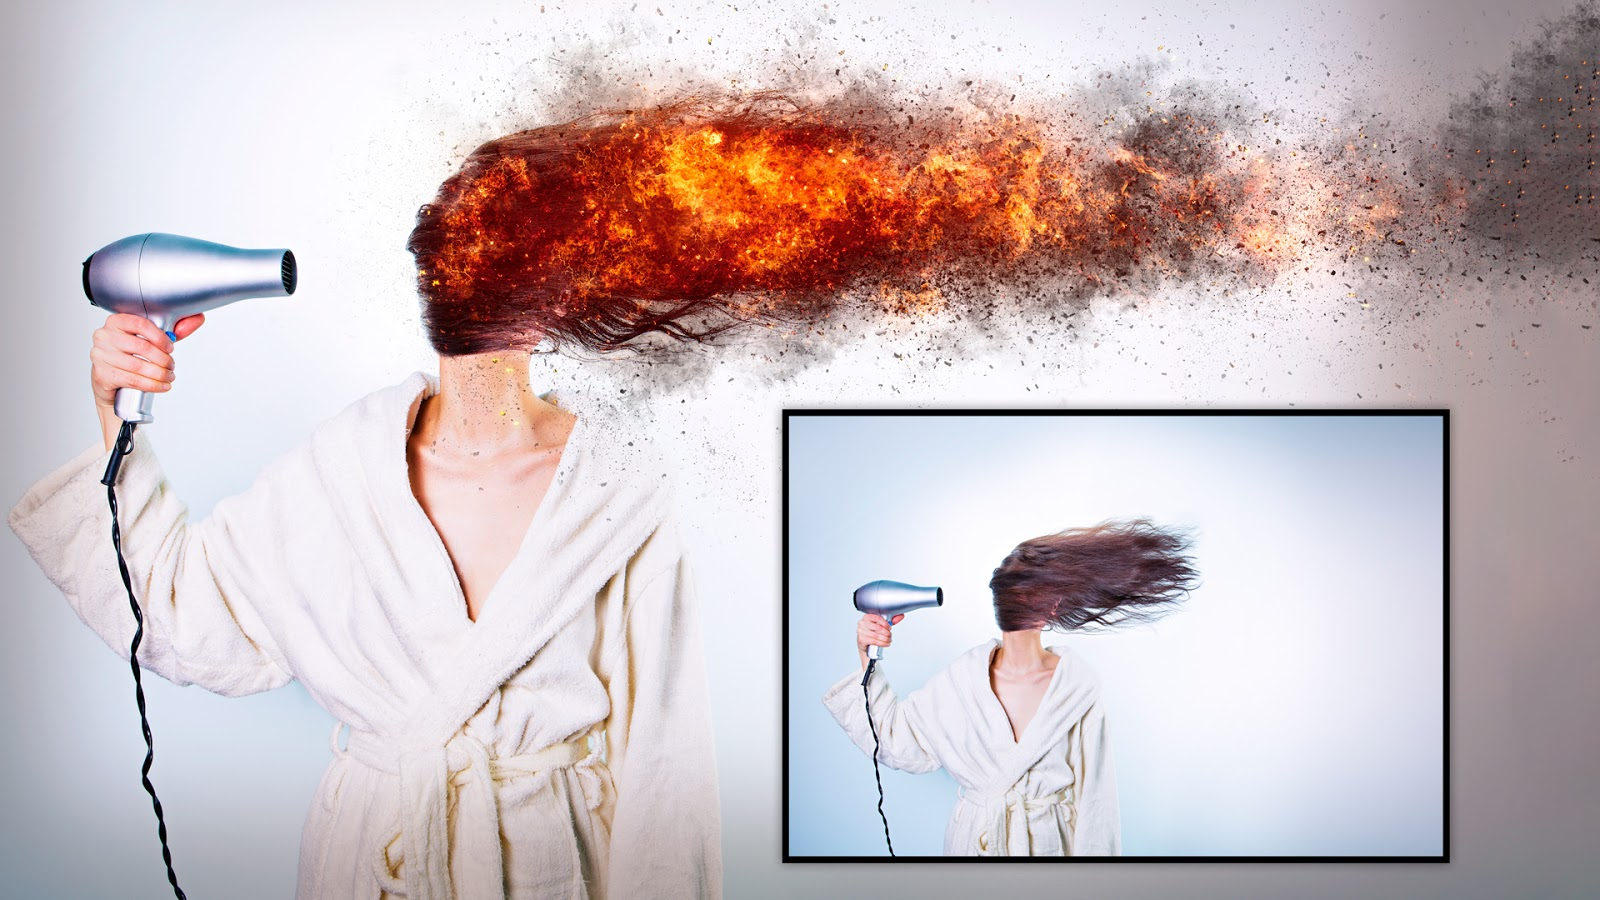 Photoshop tutorial fire storm photo effect photoshop action photoshop tutorial fire storm photo effect photoshop action tasty tutorials baditri Gallery